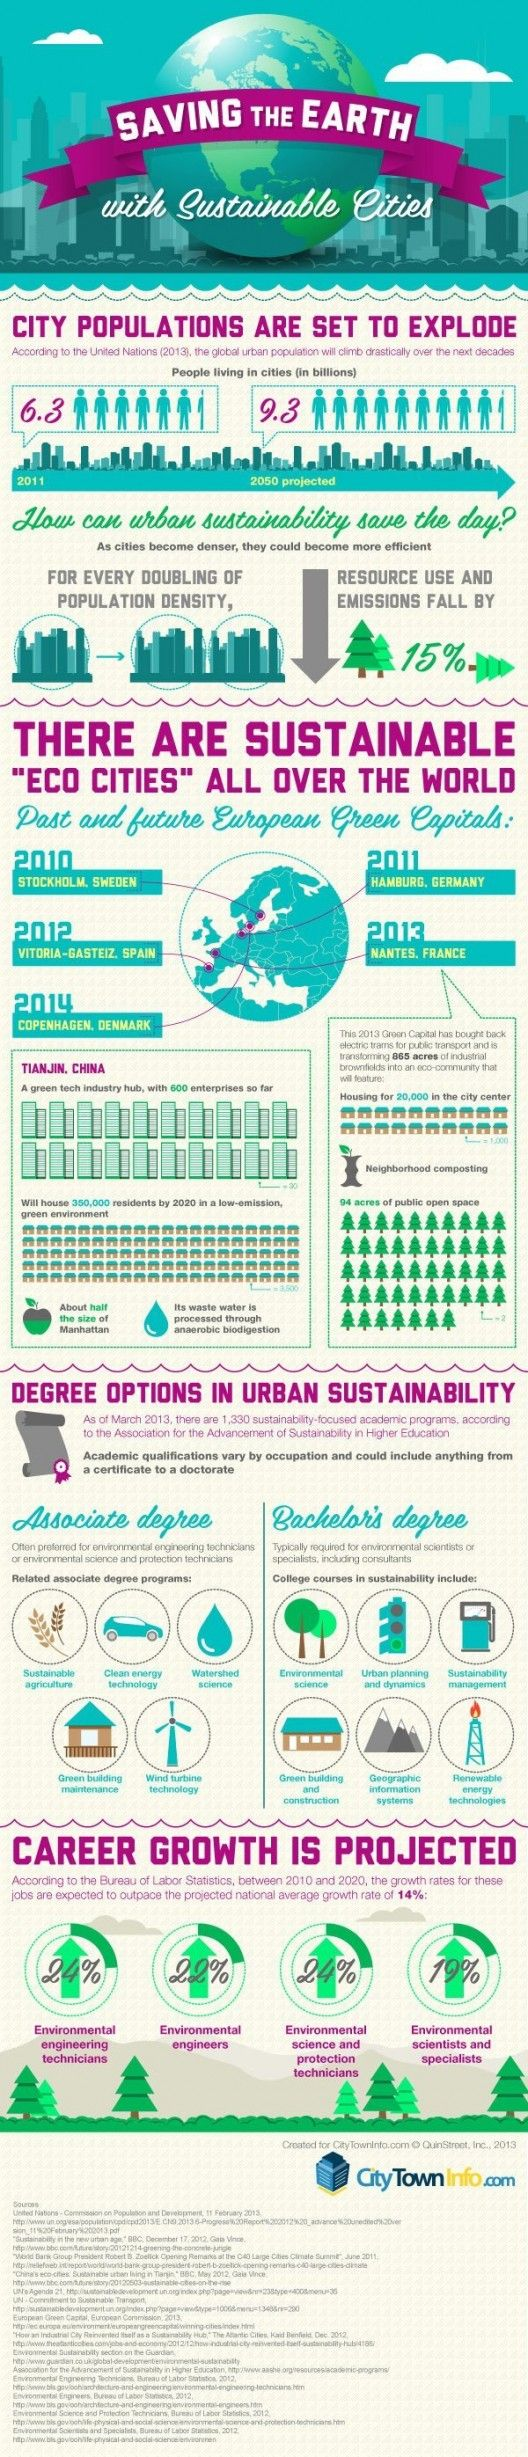 Saving the Earth with Sustainable Cities